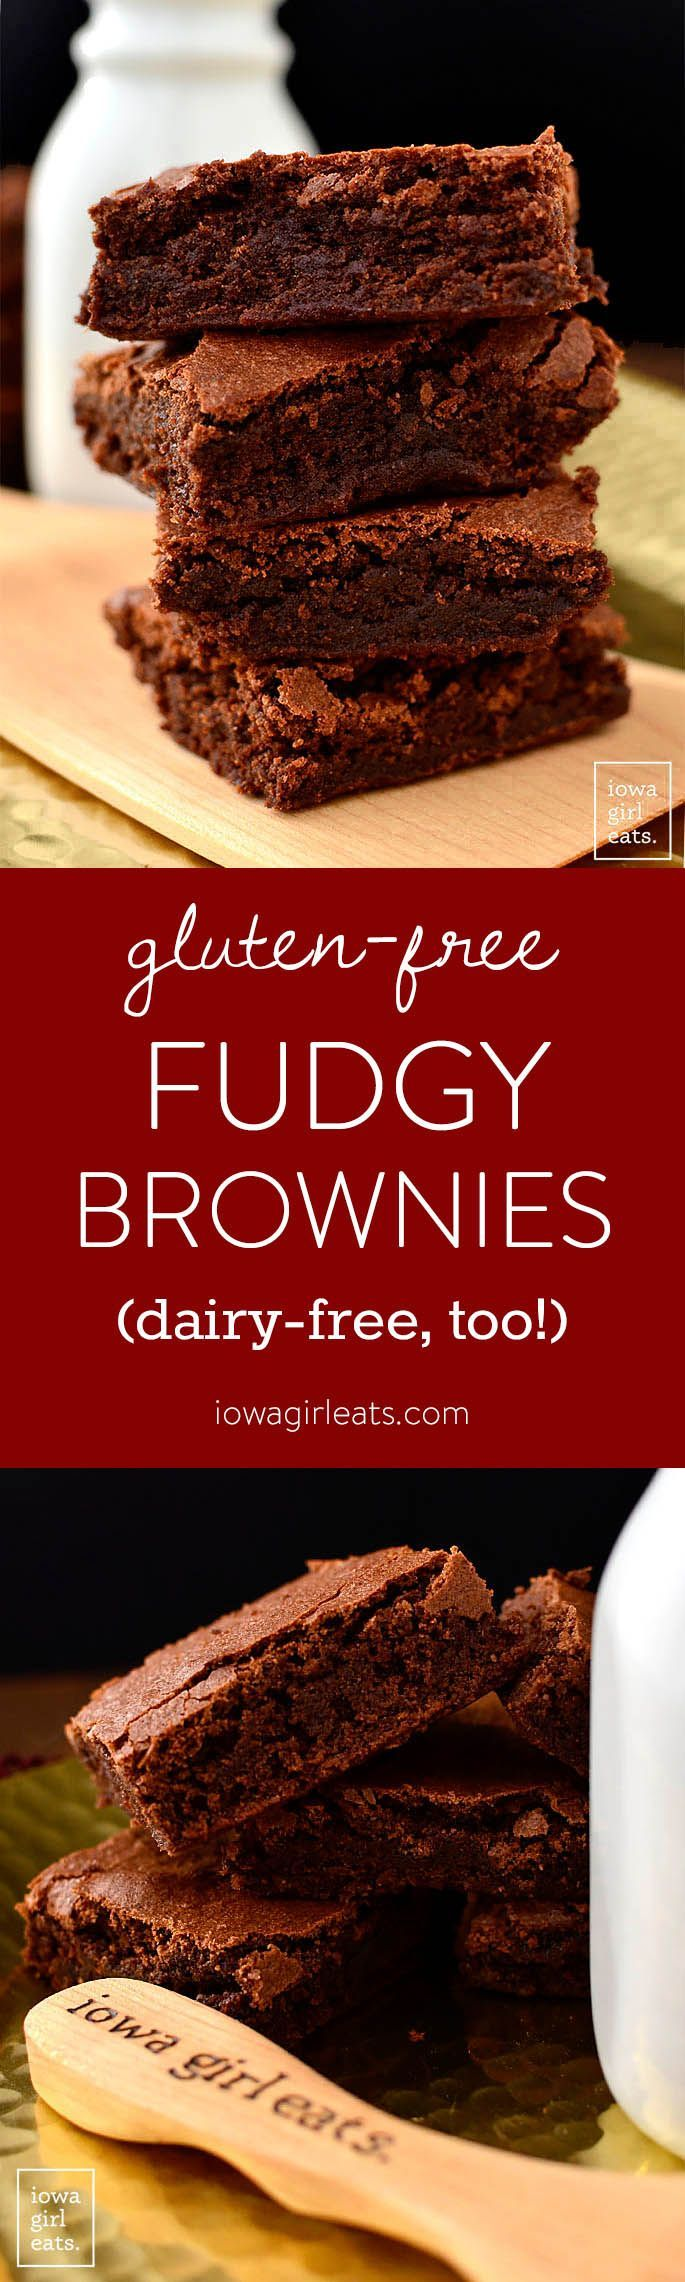 Gluten-Free Fudgy Brownies are the ultimate, dense and chewy brownie. Made in just one bowl, these gluten-free brownies are easily made dairy-free, too!    iowagirleats.com